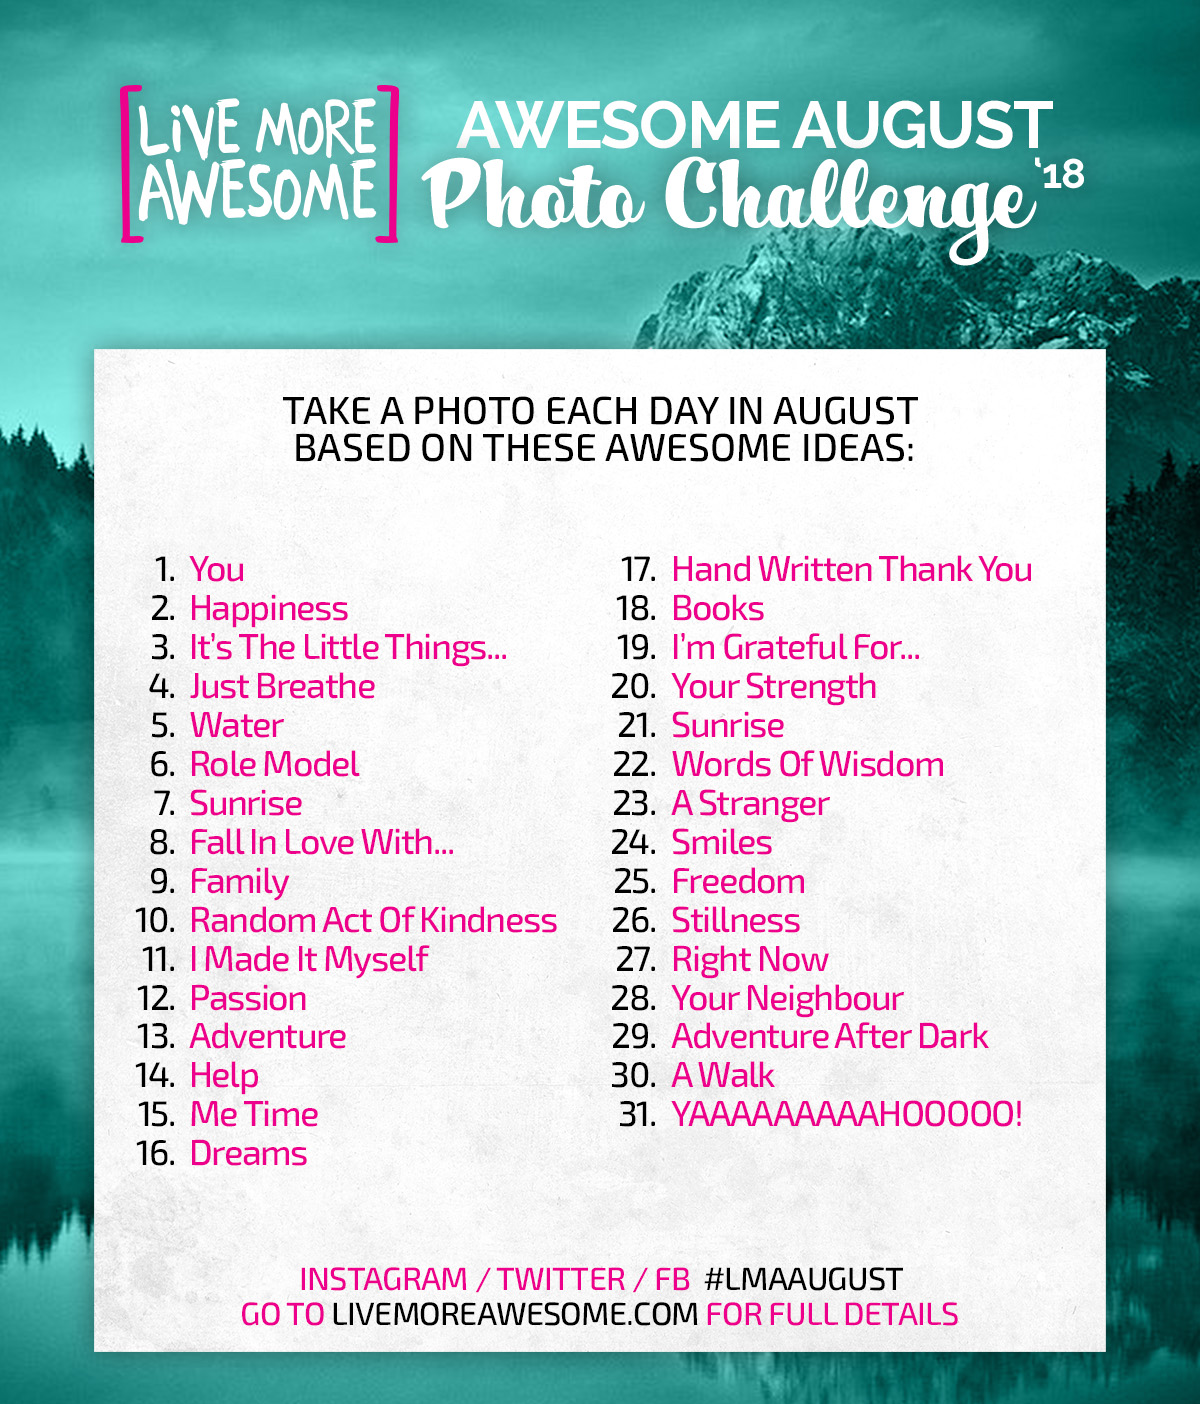 Awesome August Photo Challenge